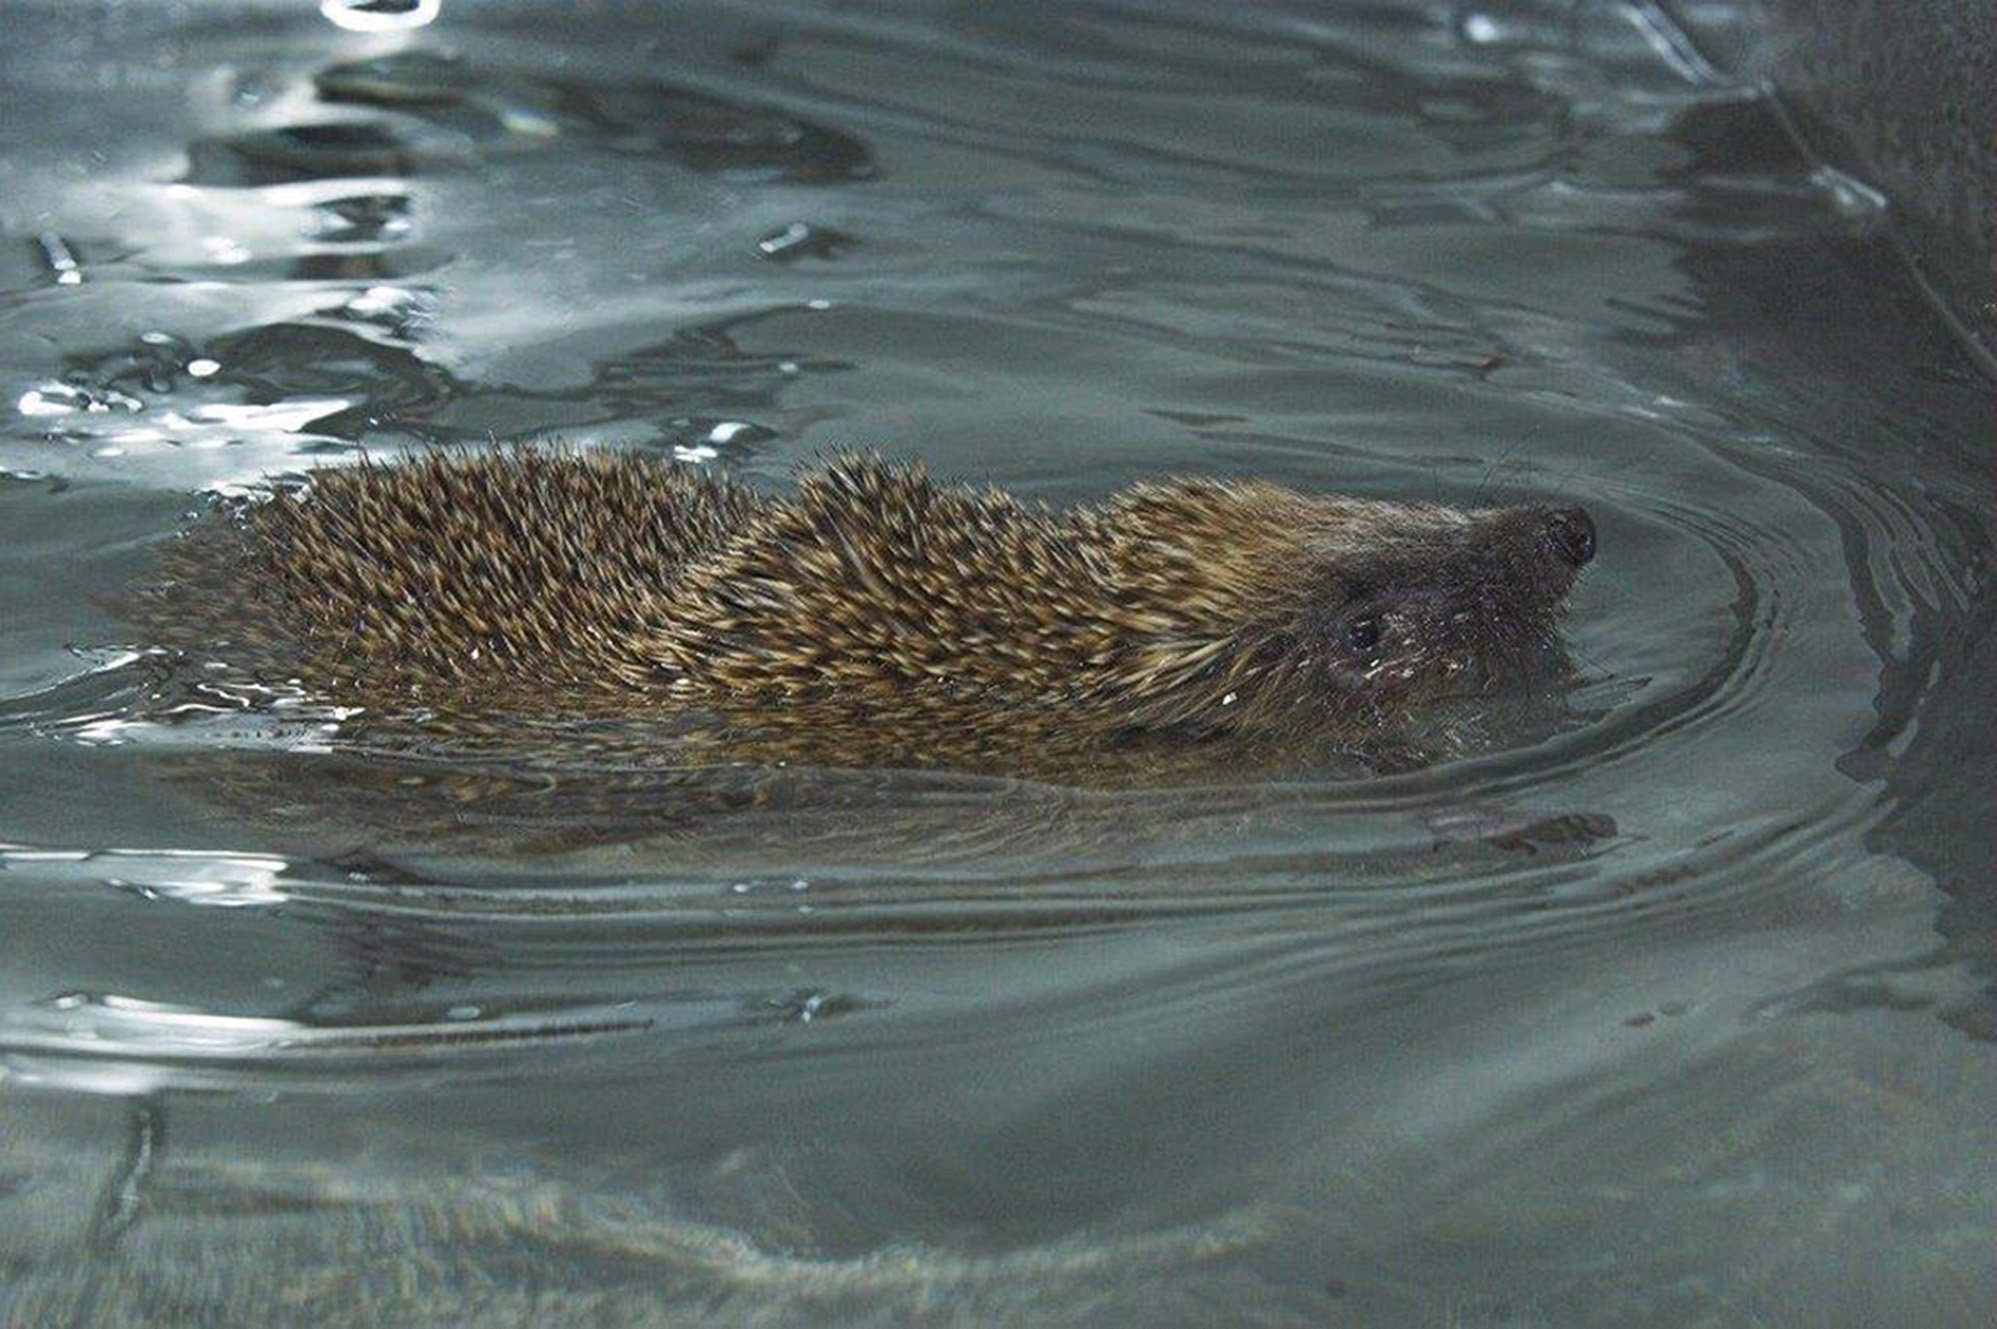 Disabled hedgehog given new lease of life with swimming lessons